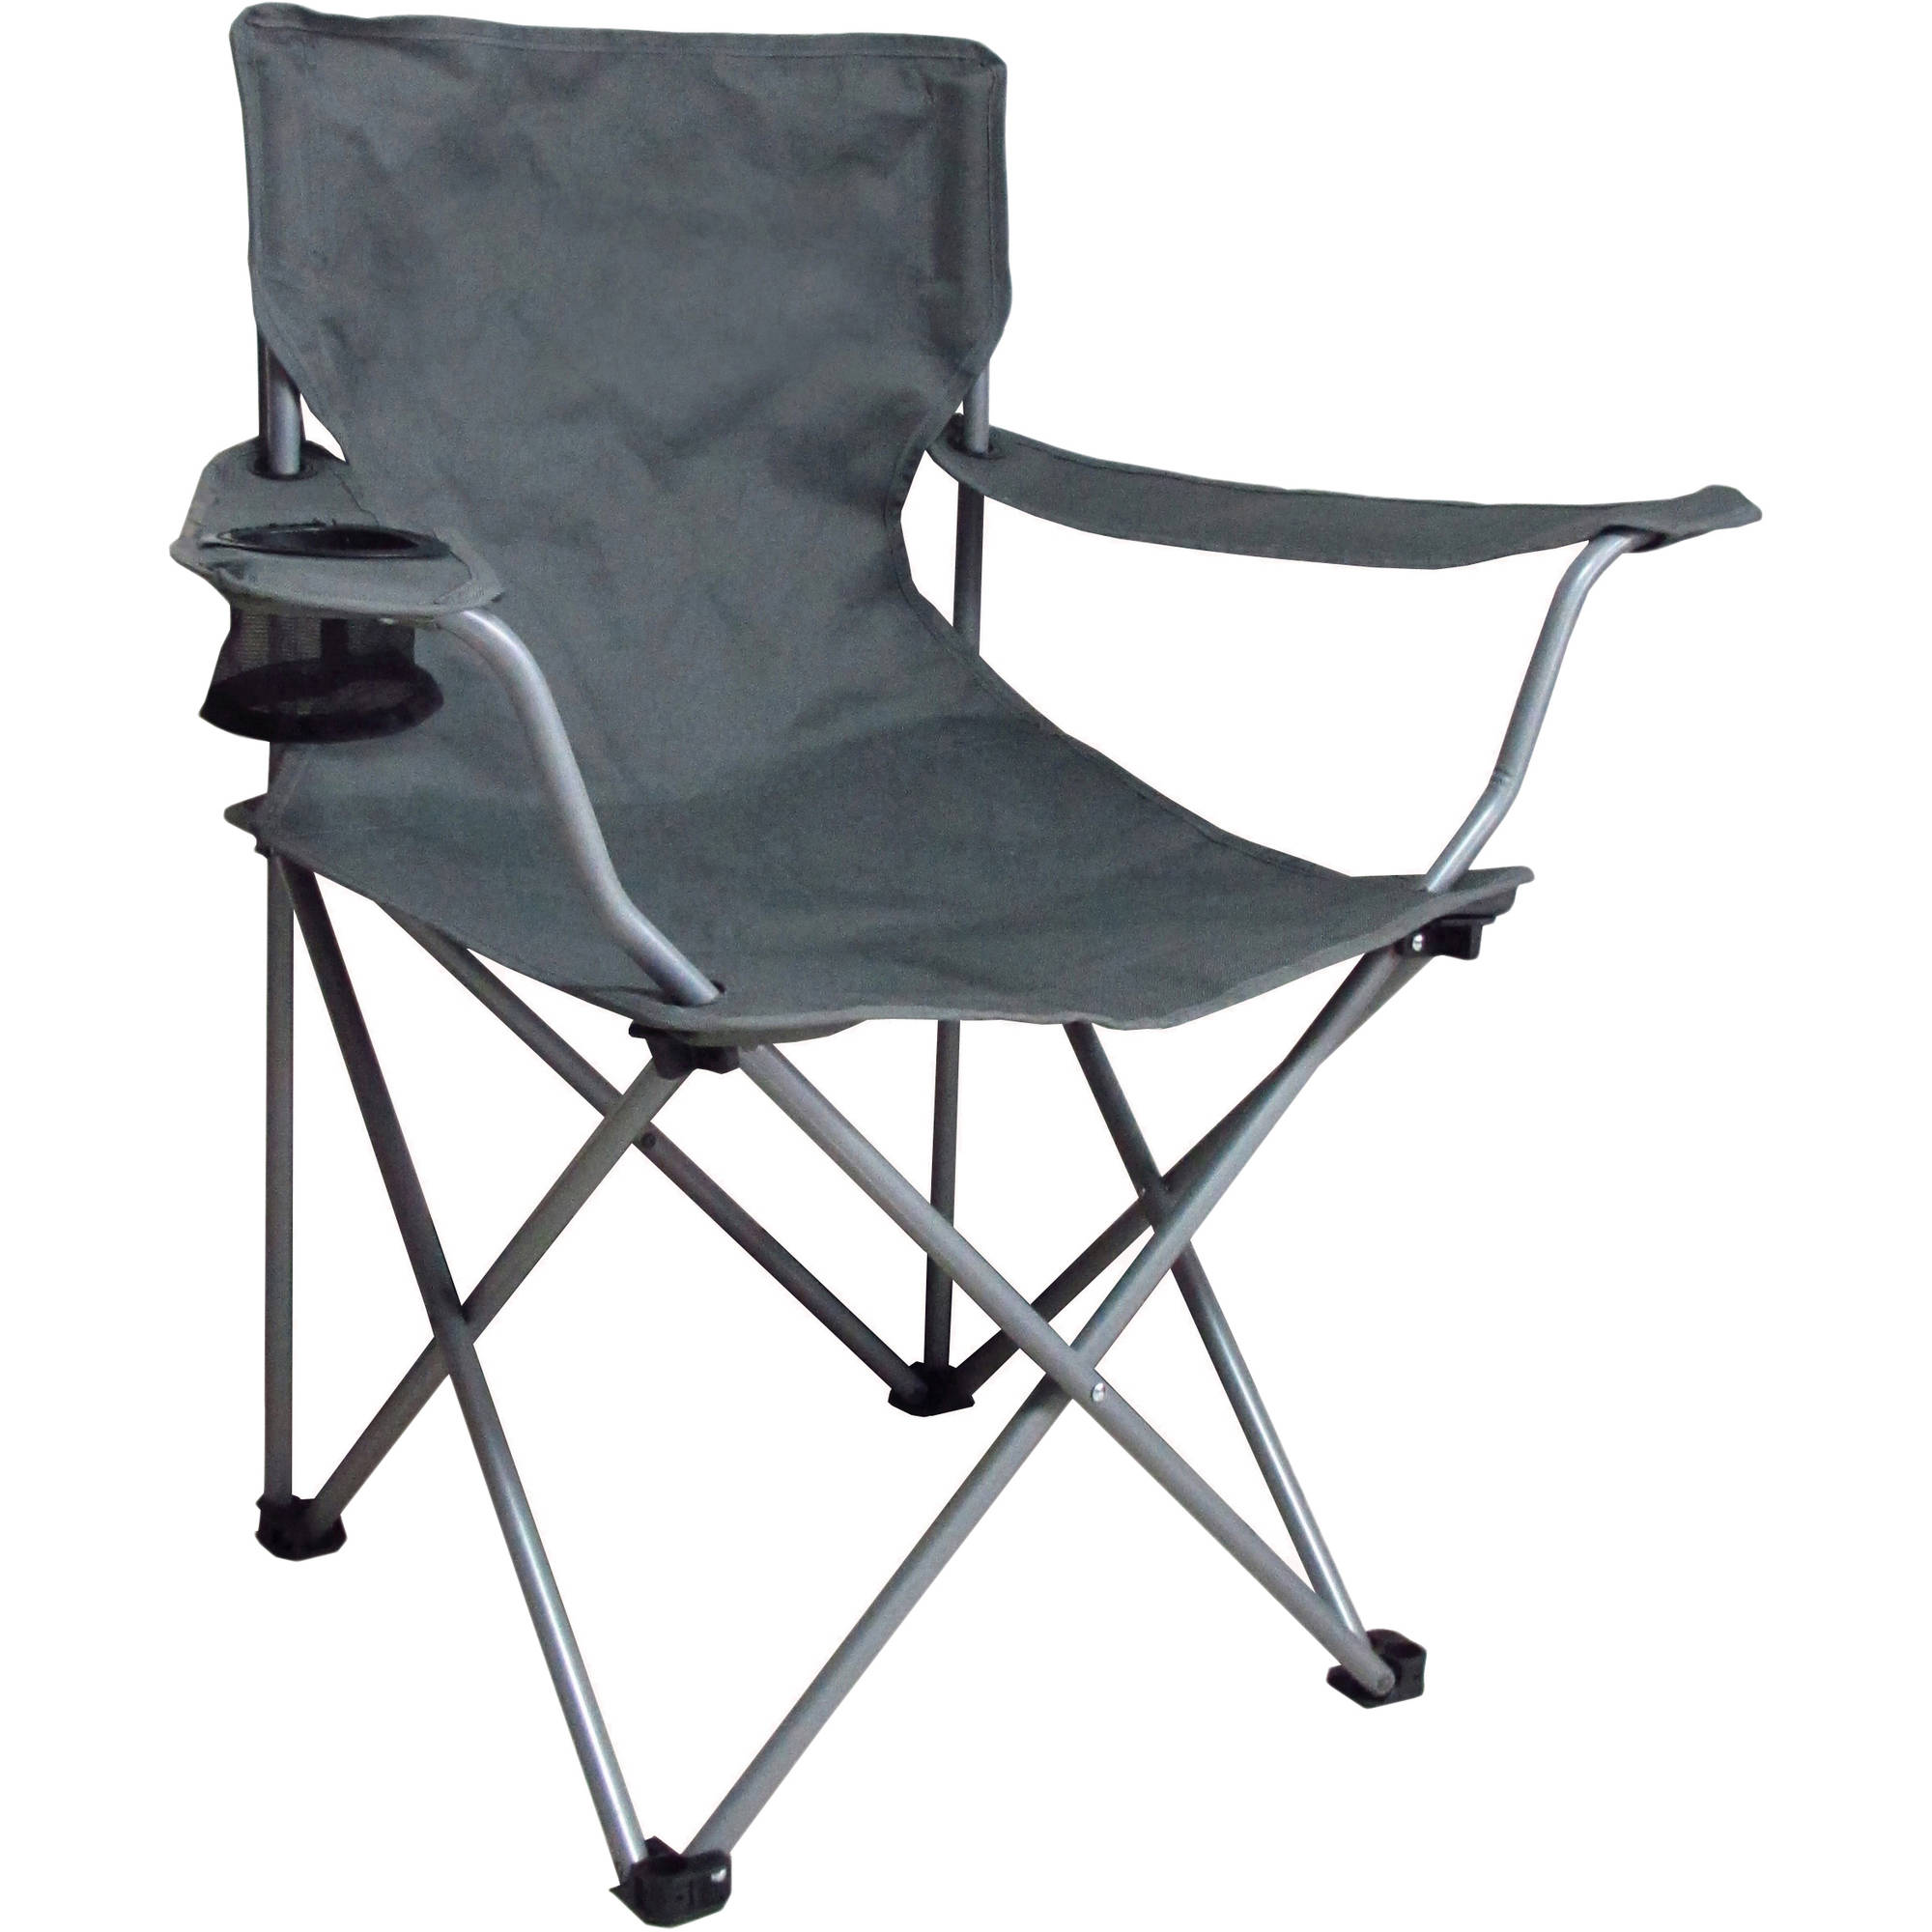 Charmant Ozark Trail Folding Chair